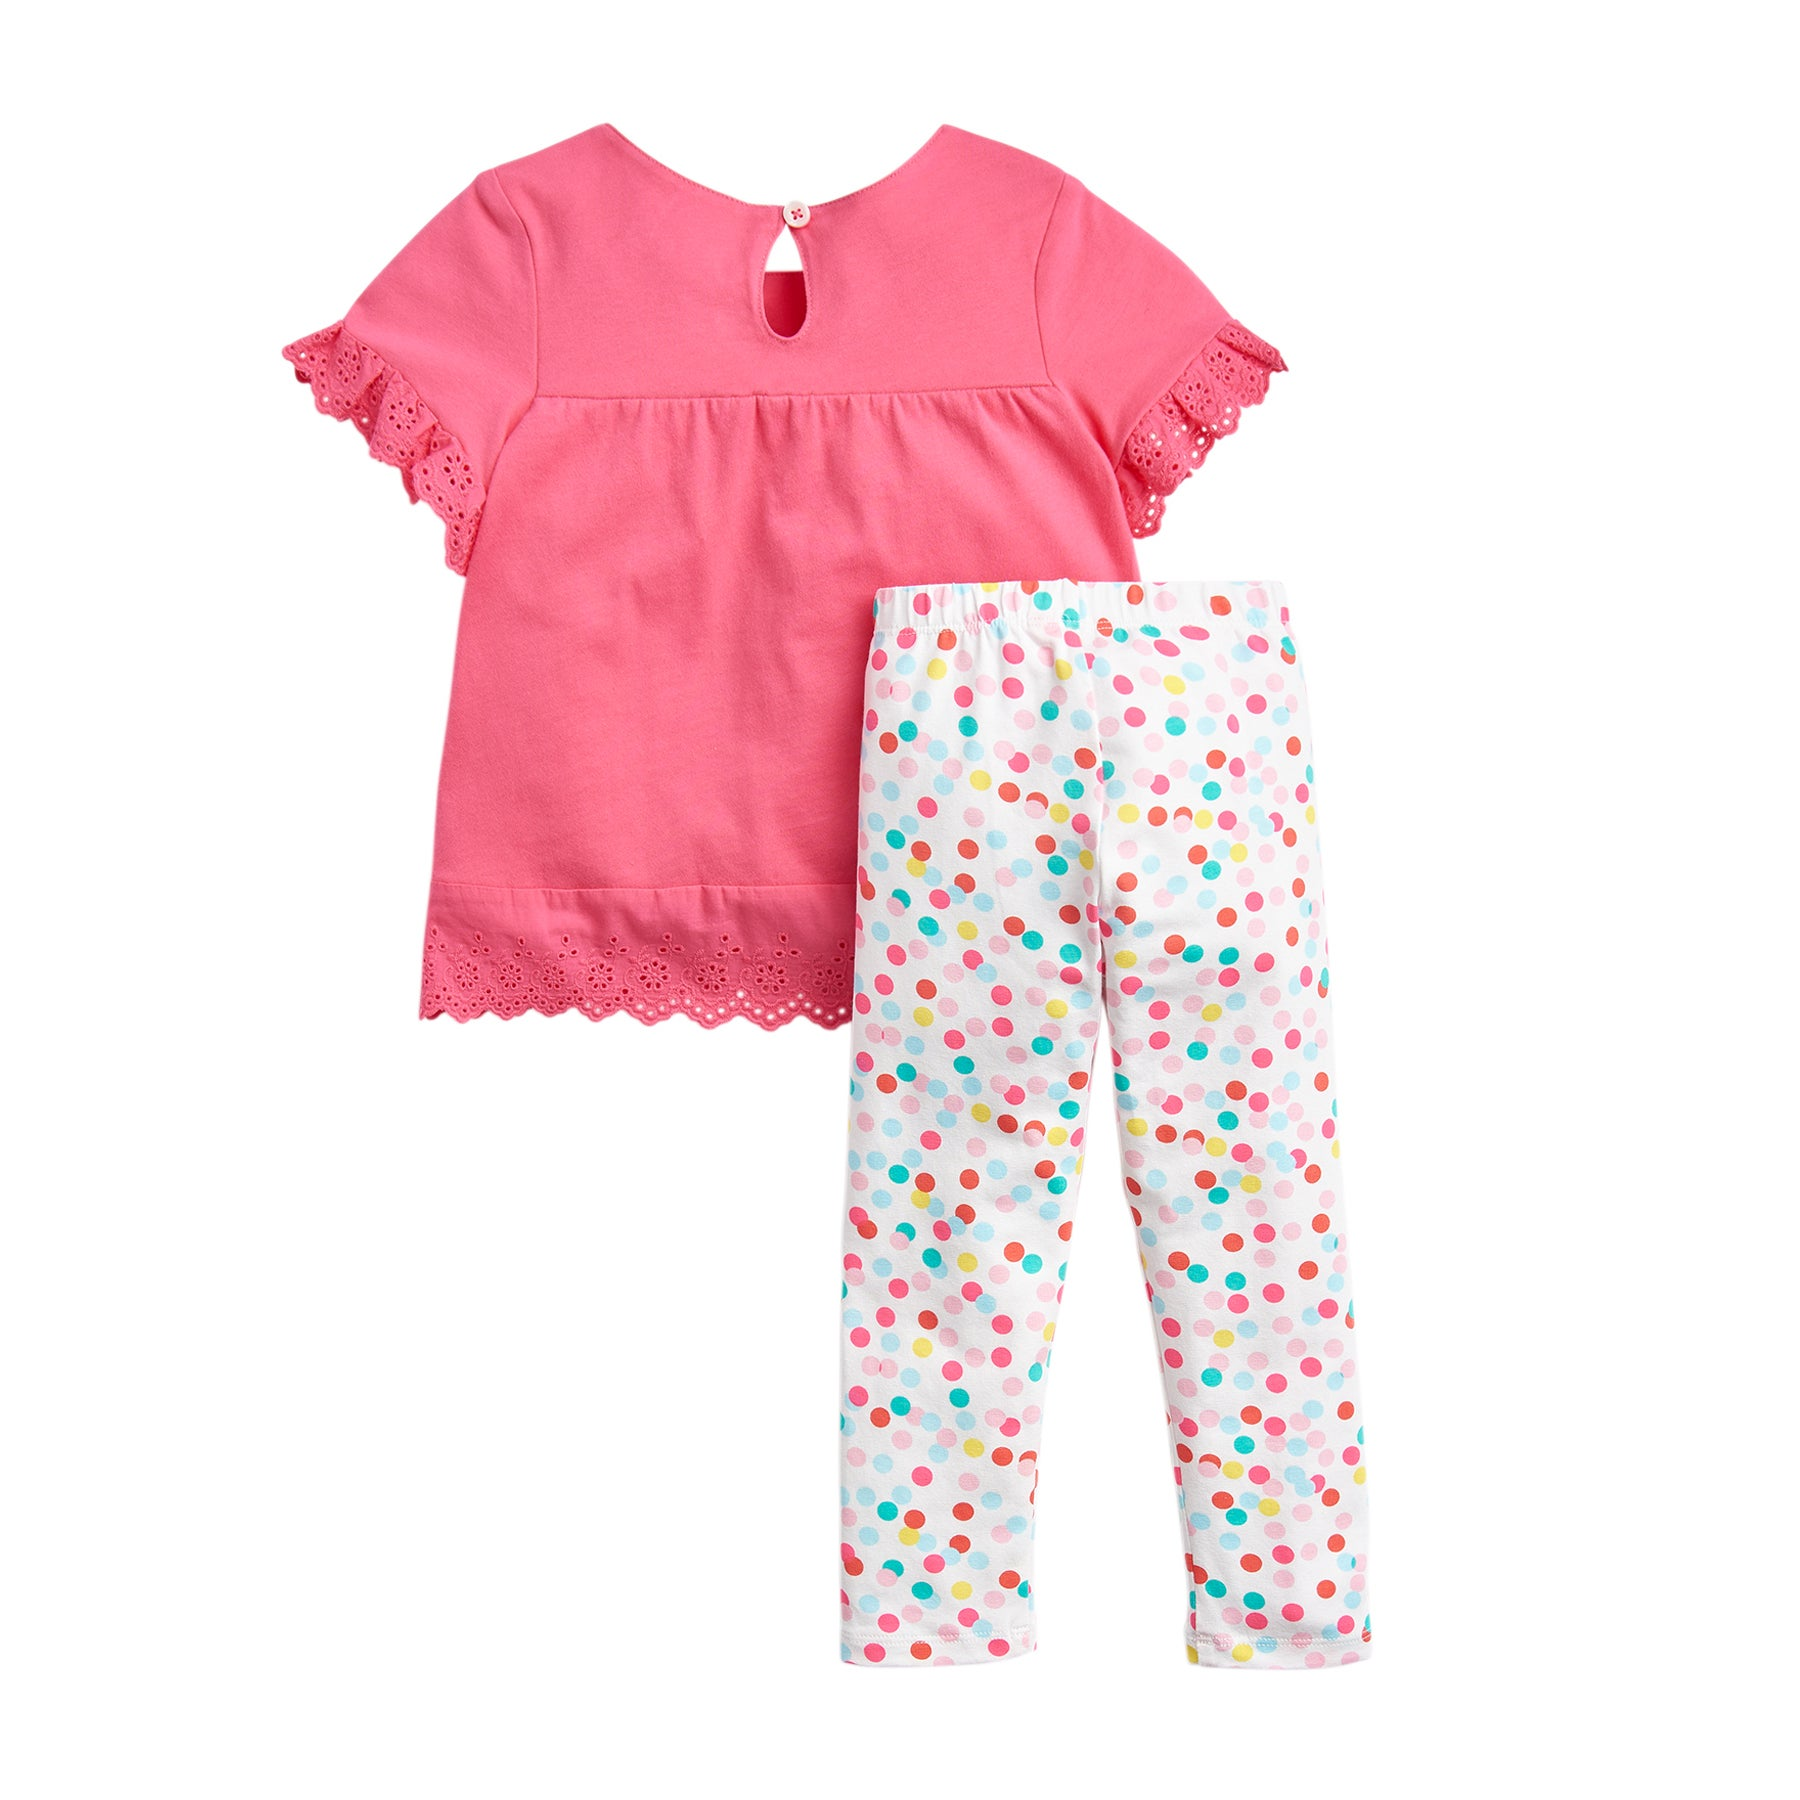 Joules Nell Girls Top - Bright Pink